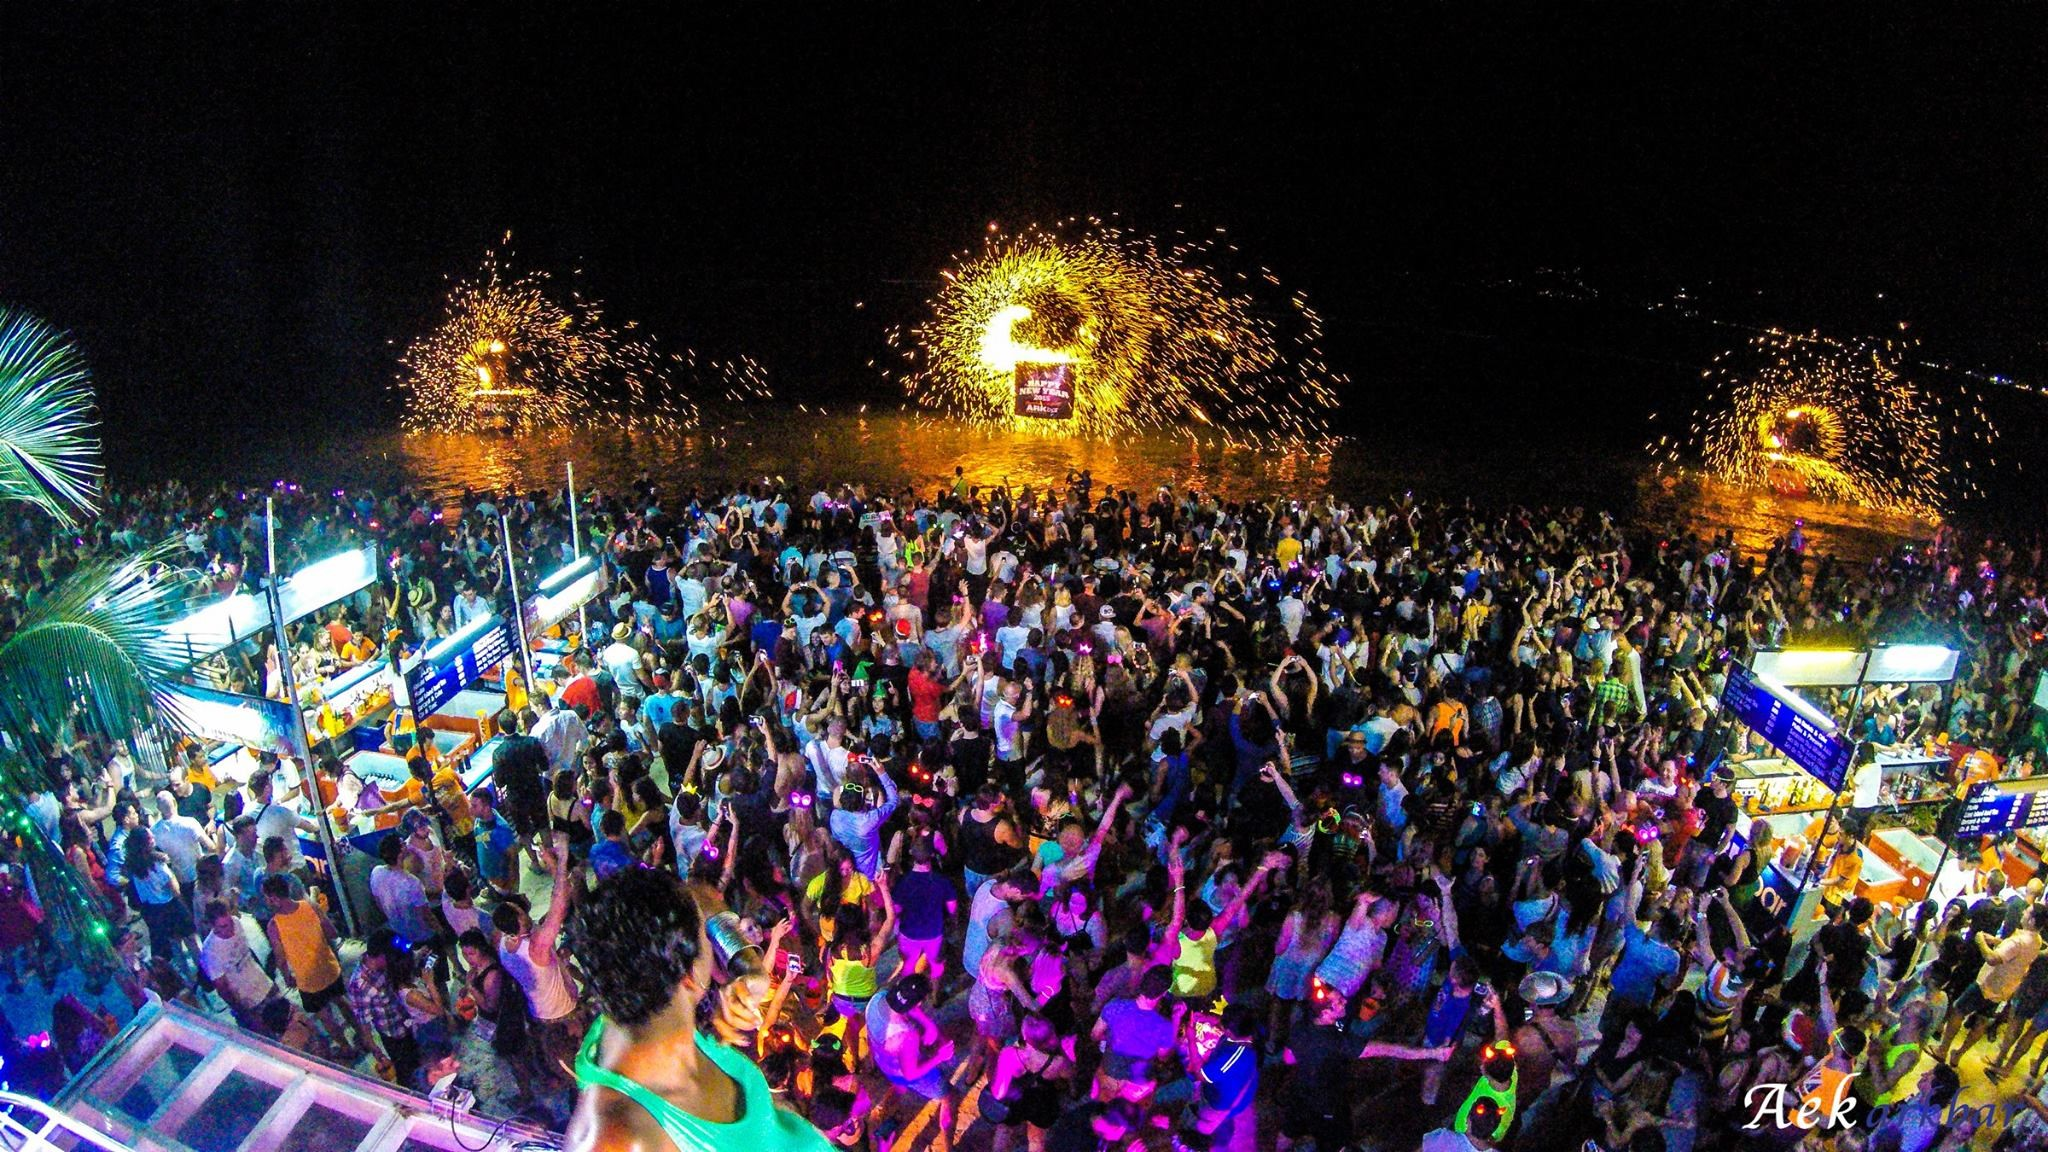 Full Moon Party Is A Notable Event For Tourists In Thailand